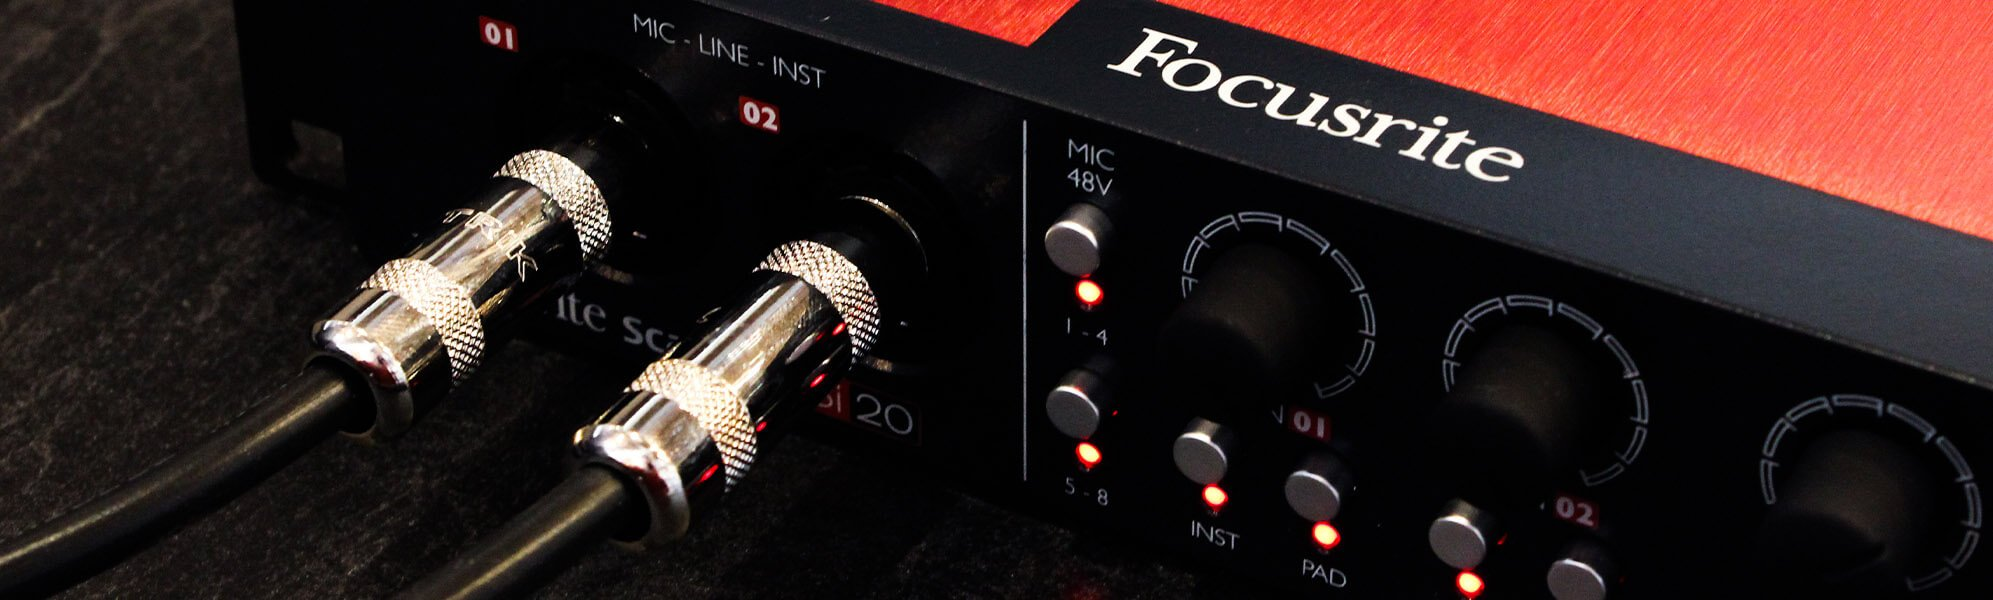 AVB Audio Interfaces